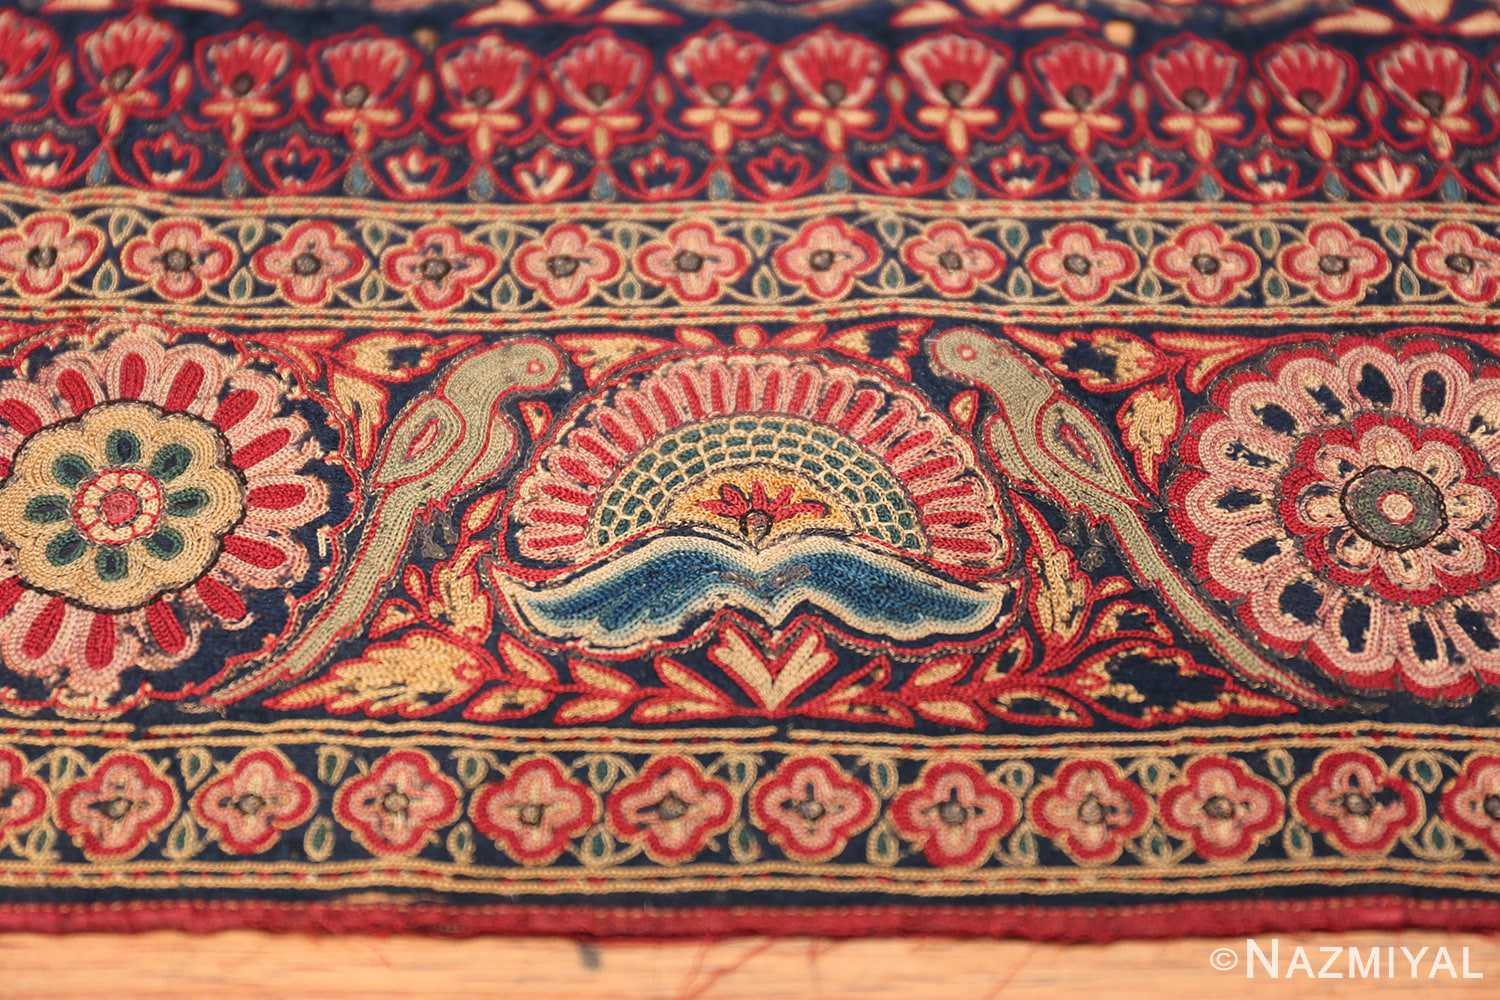 18th Century Indian Embroidery Textile 40364 Blue Flower Nazmiyal